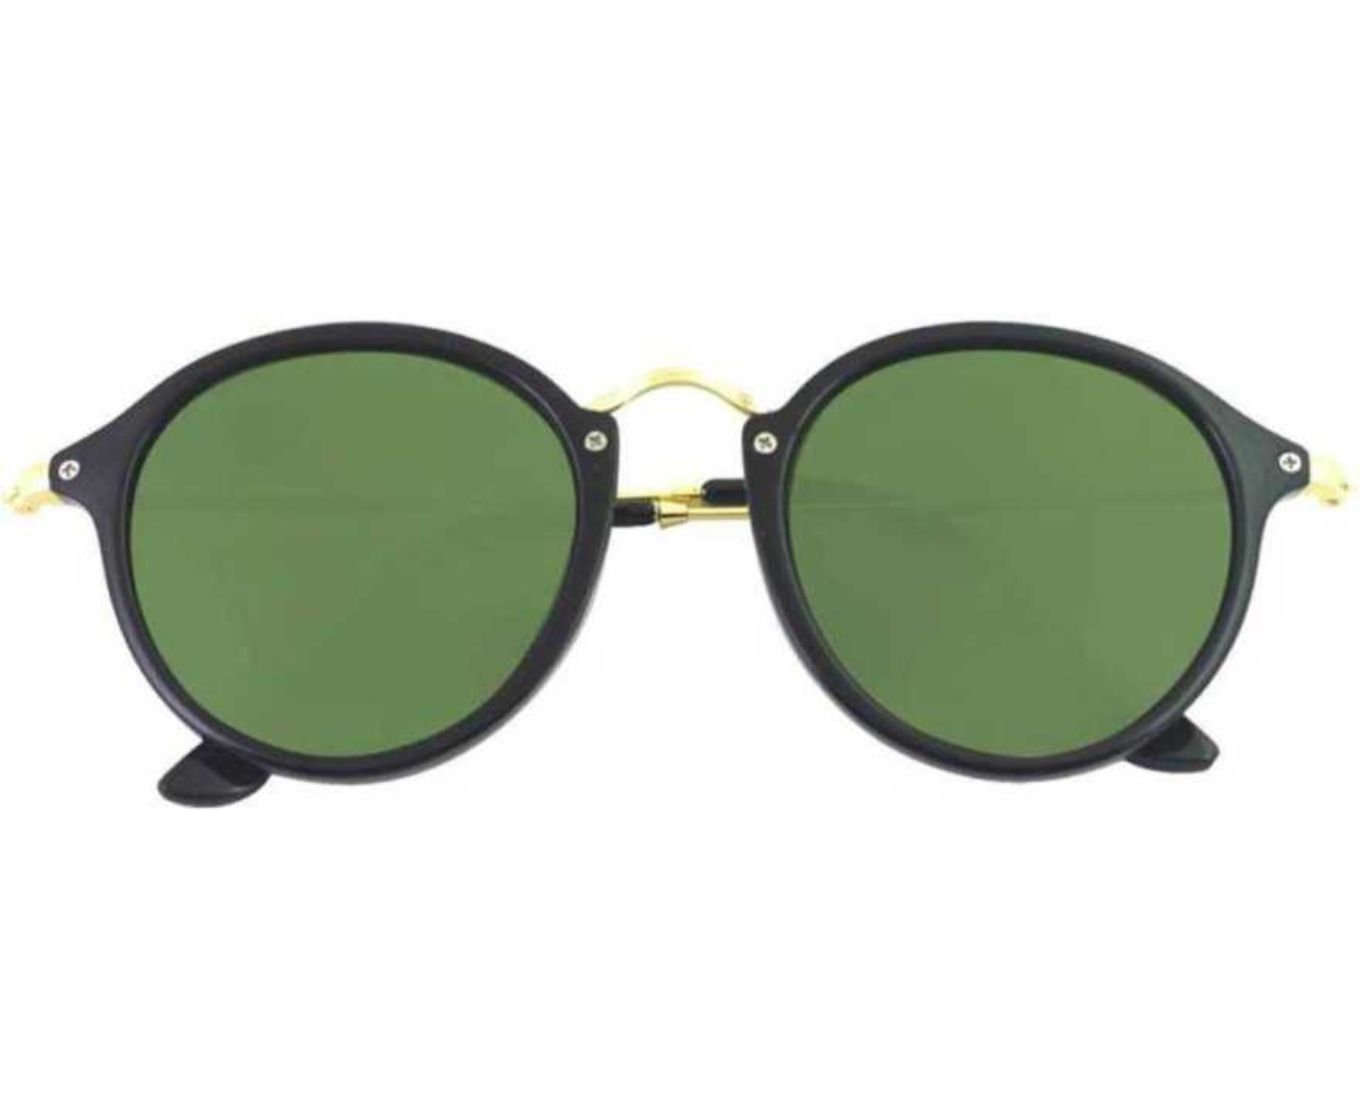 ETRG Unisex Premium  Oval Frames Green Metal Sunglasses (Pack of 2)